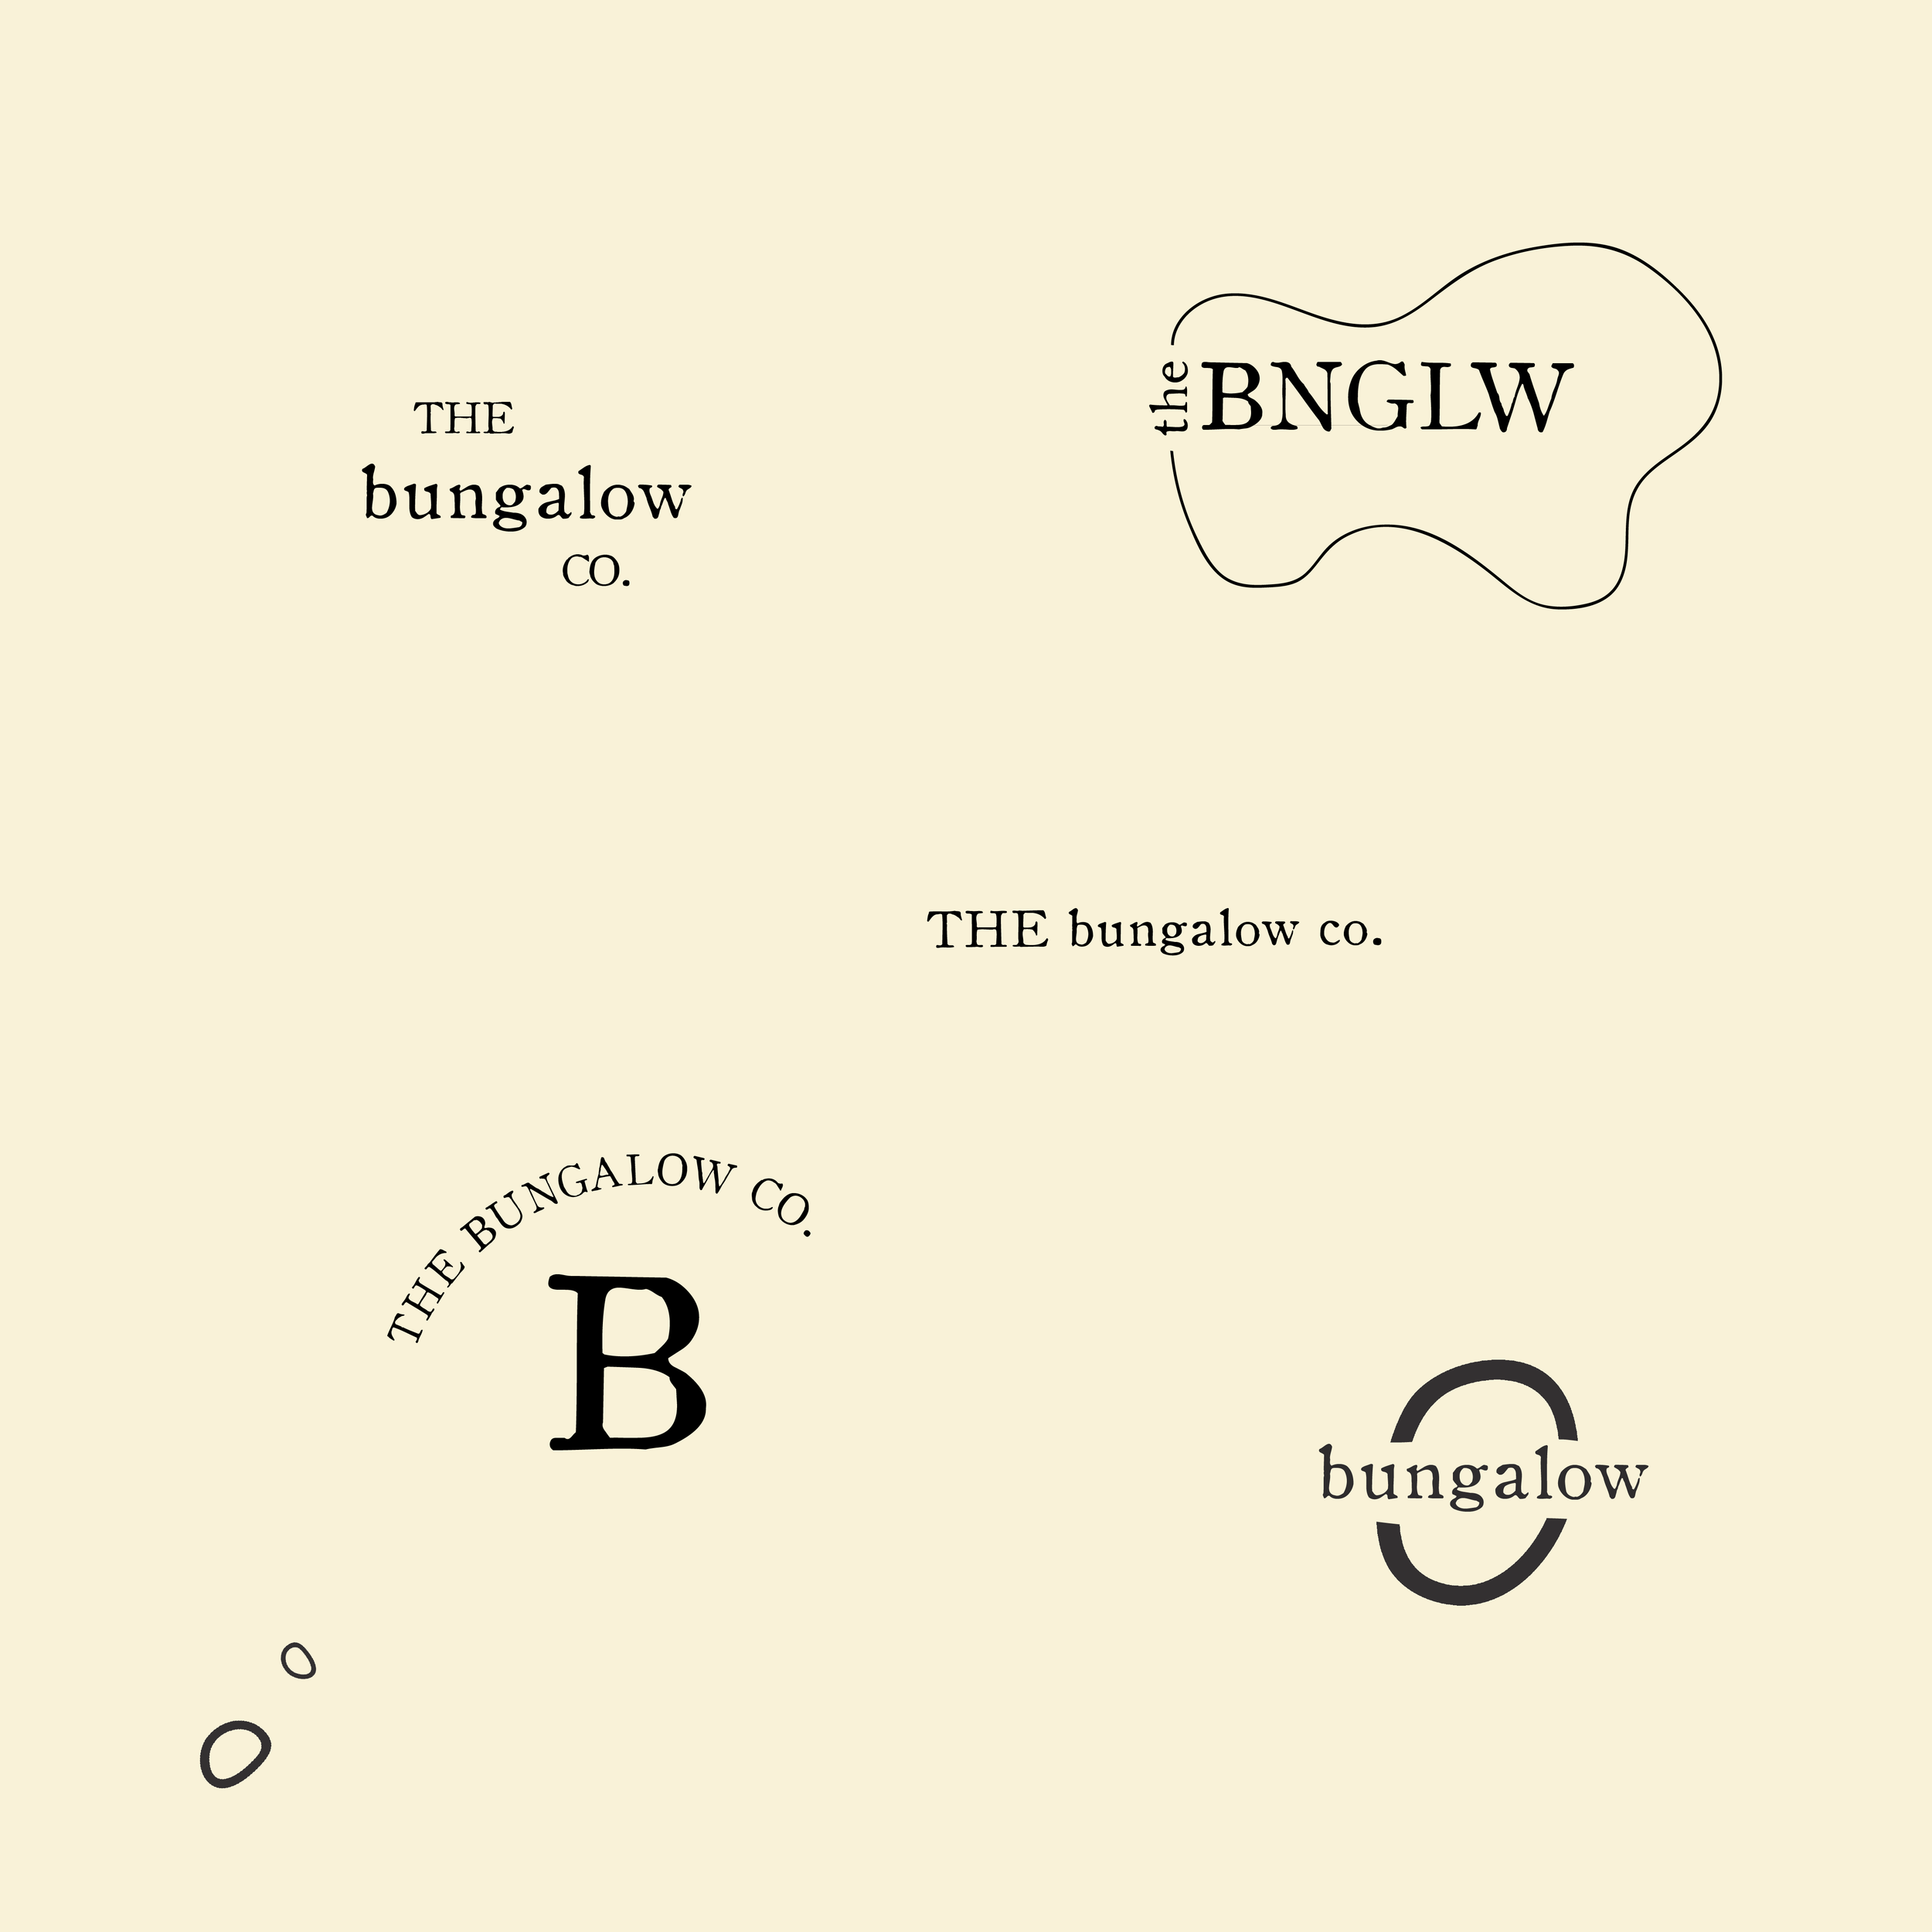 paige-leahy-blank-paige-design-branding-services-and-brand-identity-6